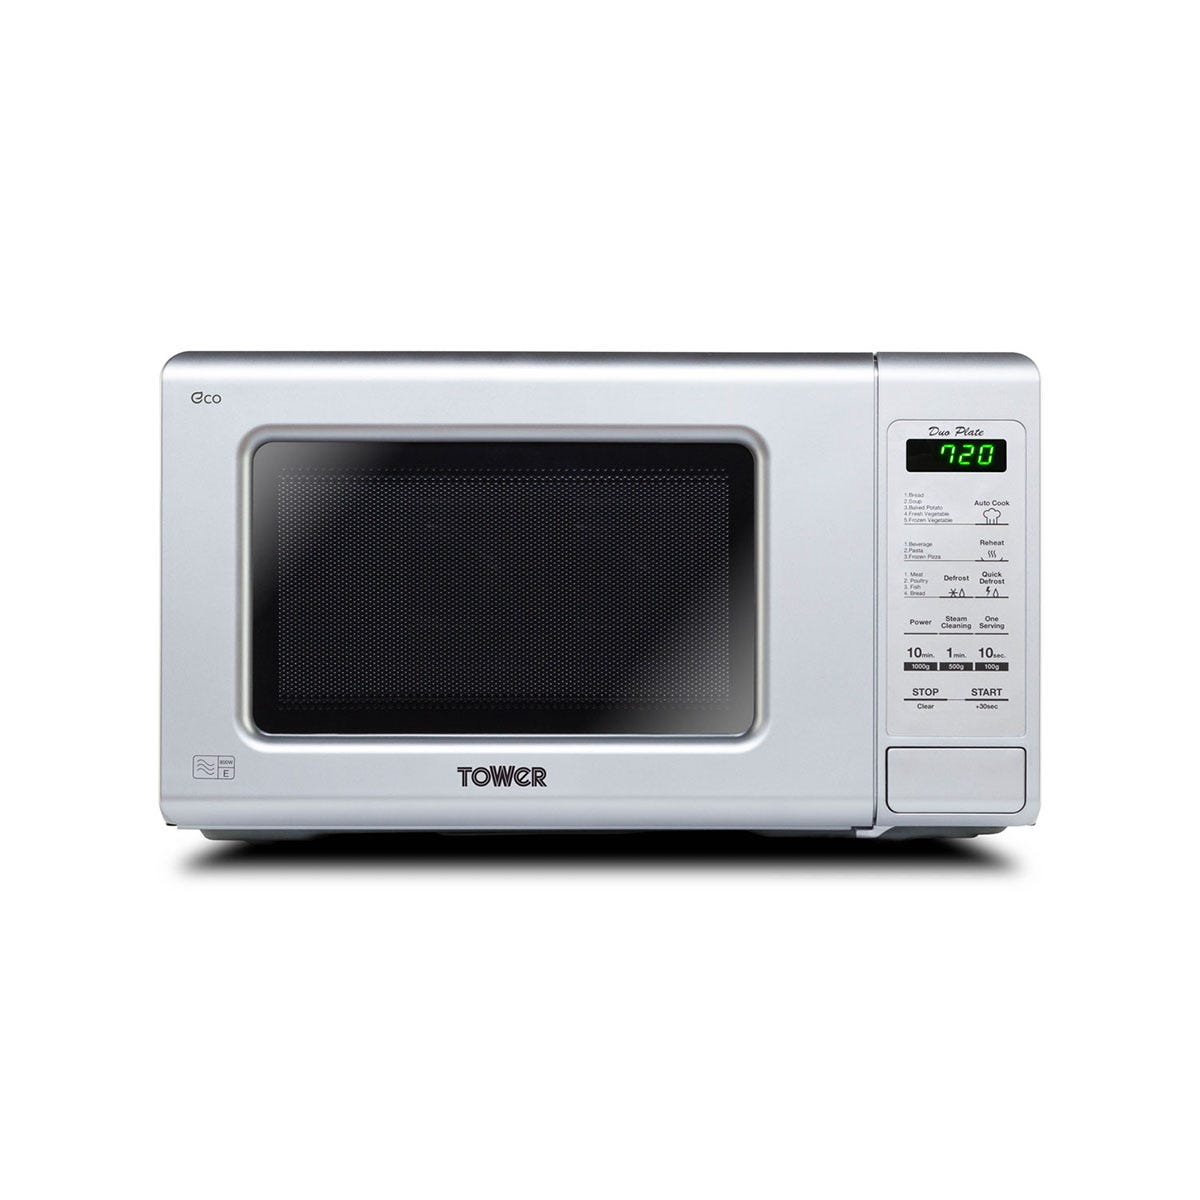 Tower KOR6M1RDSLT 800W 20L Touch Control Microwave - Silver